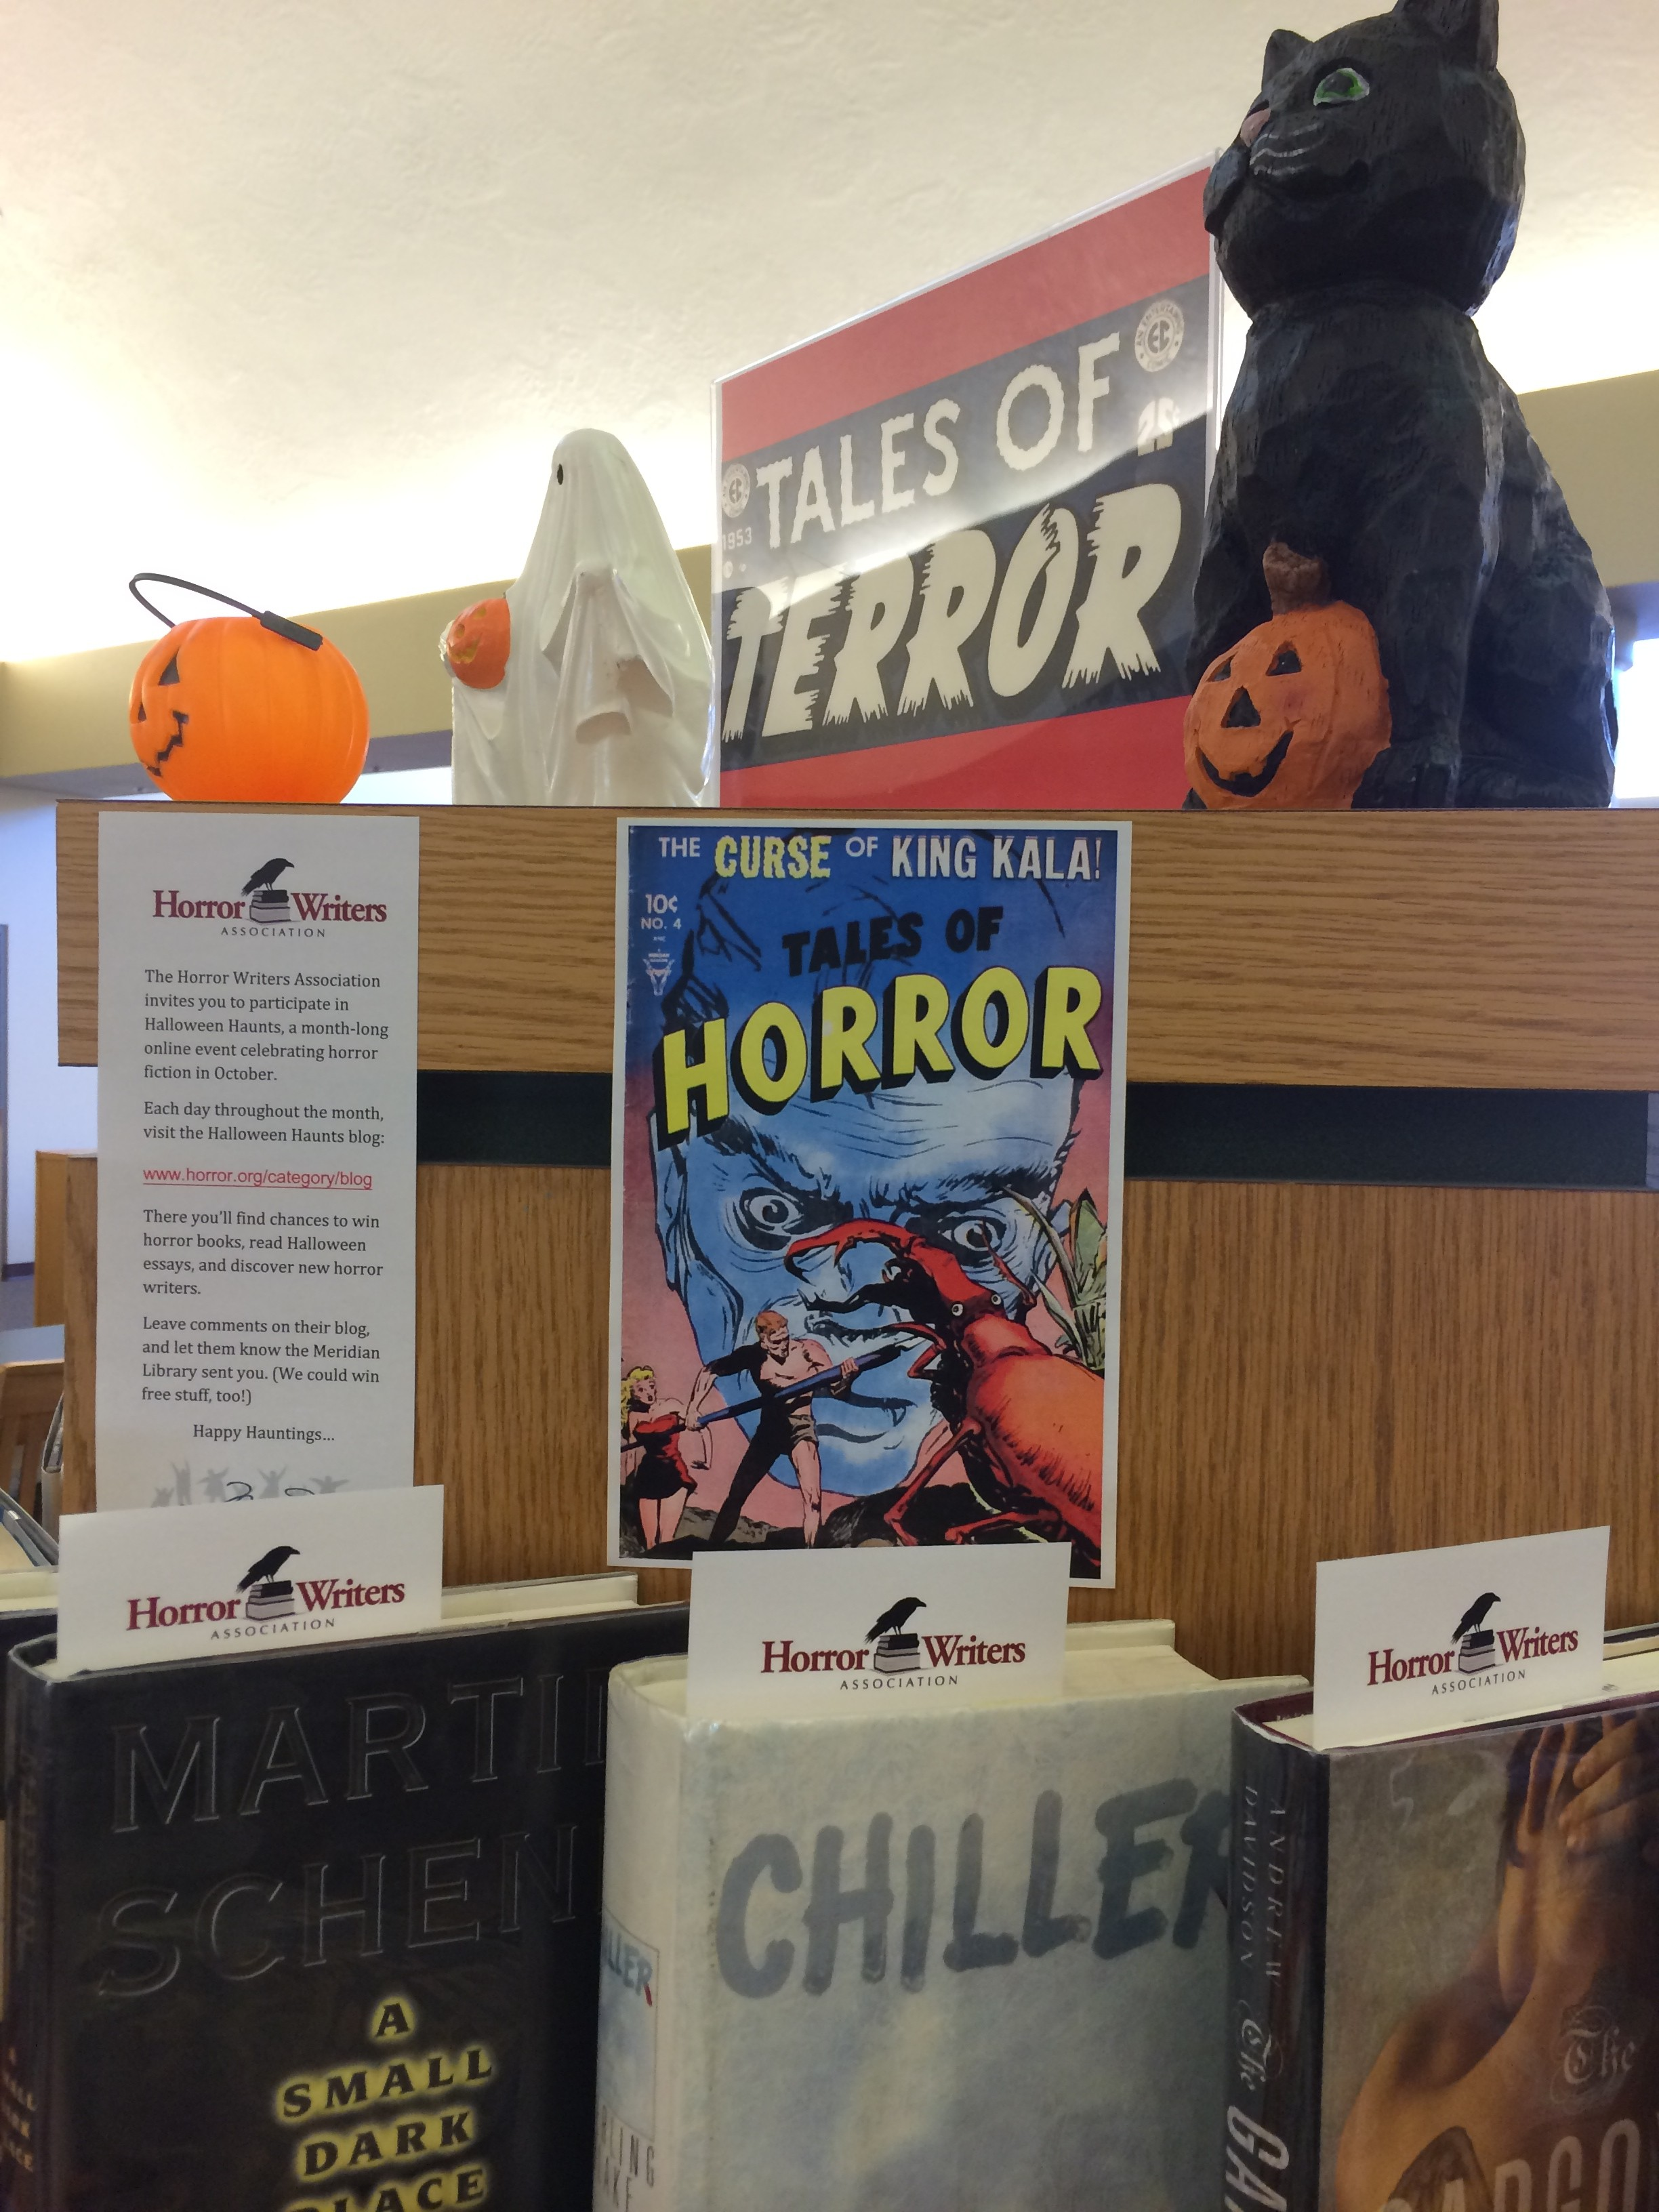 Meridian Library 1 - Horror Writers Association BlogHorror Writers